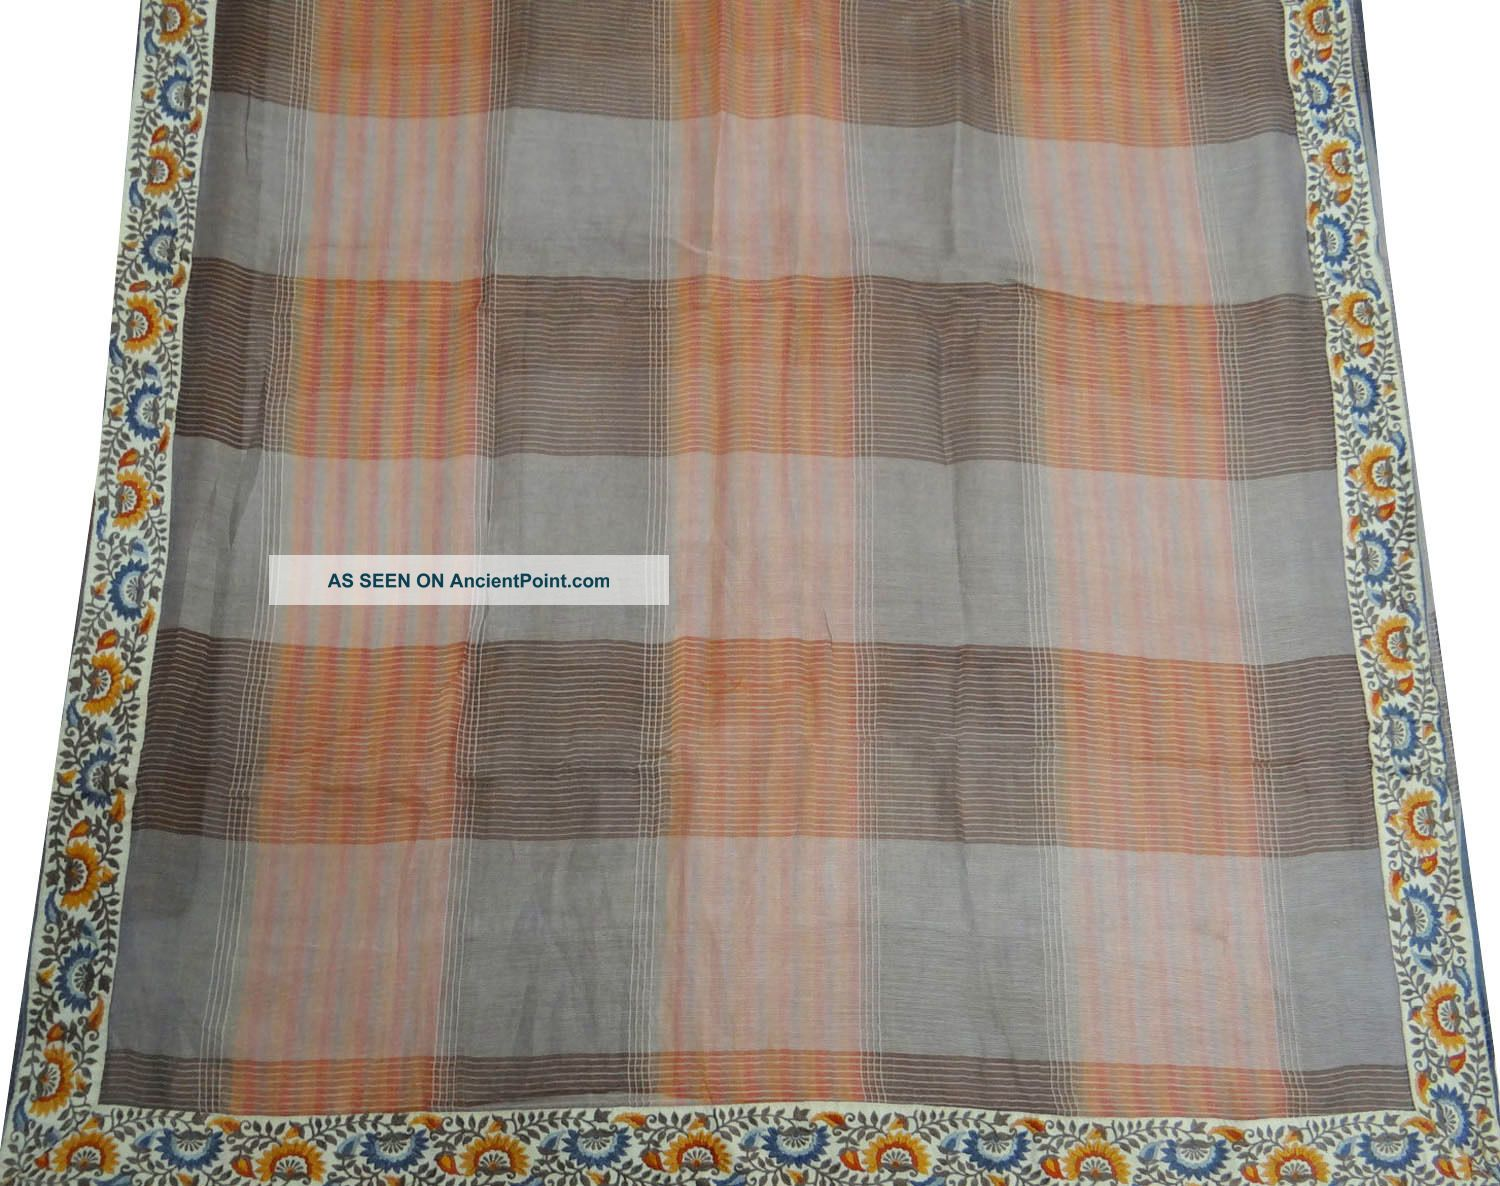 Vintage Saree Polyester Embroidered Indian Sari Fabric Gray Deco Craft Drape Art Other photo